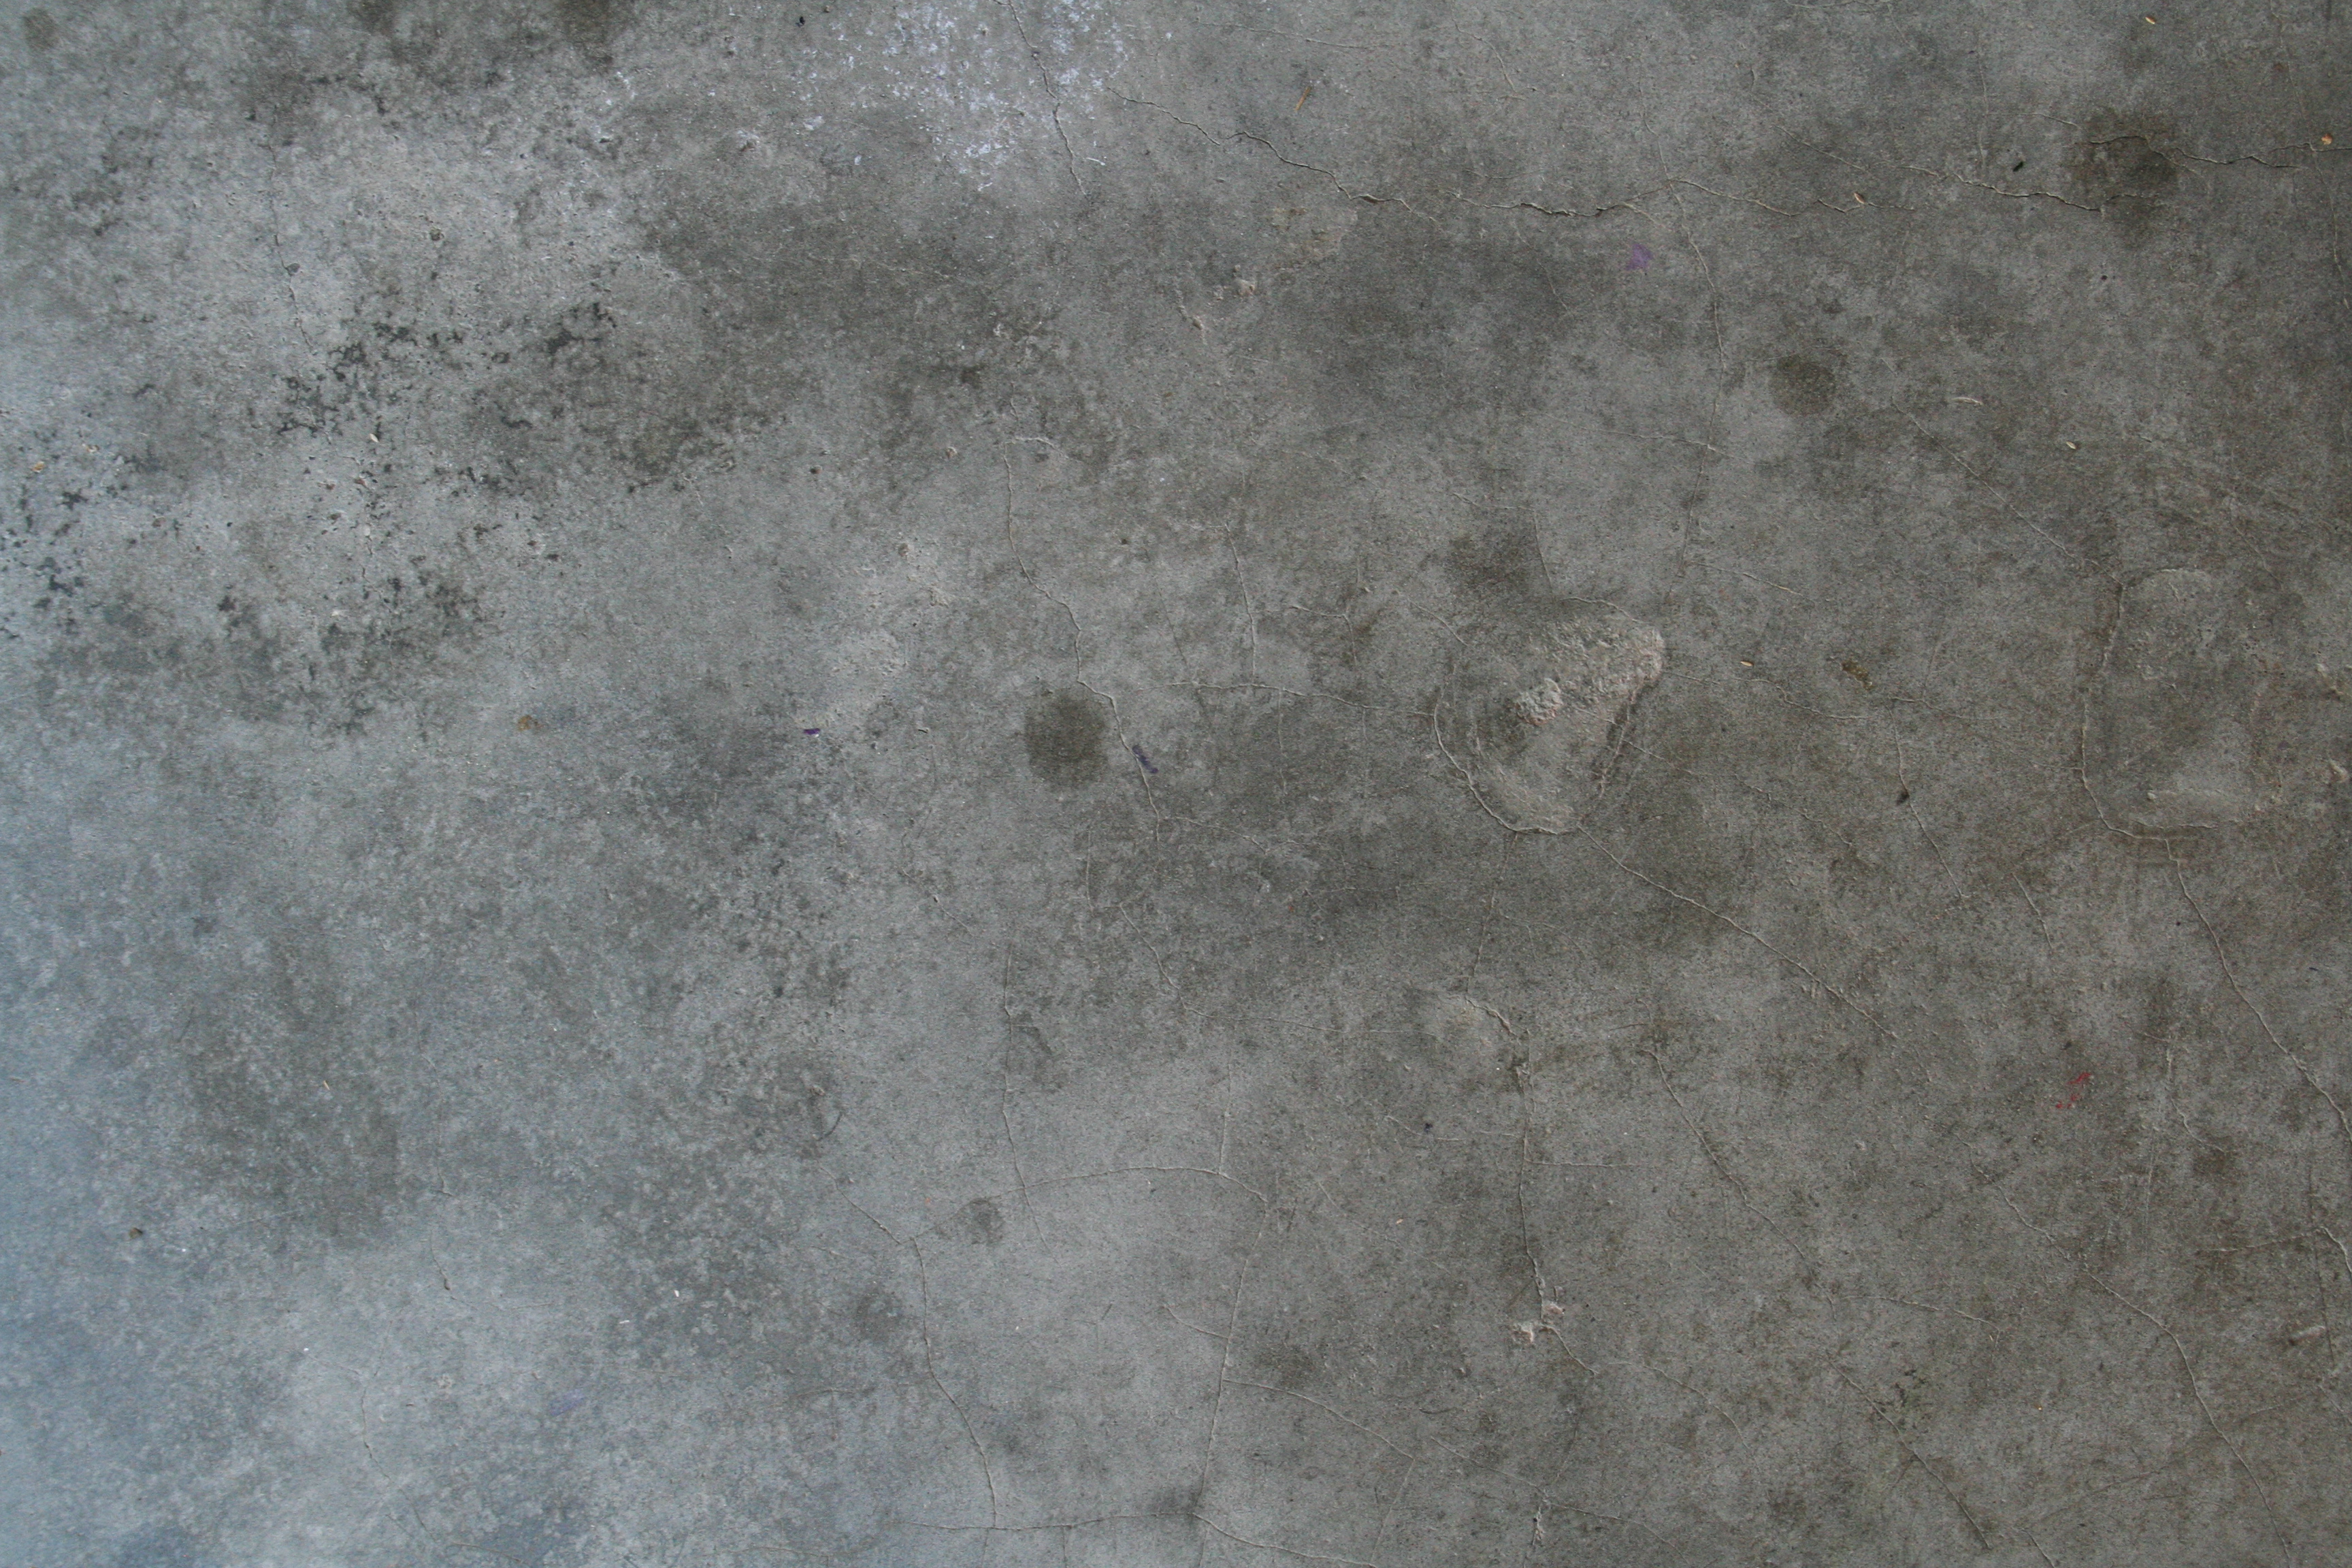 20 grey concrete texture textures for photoshop free